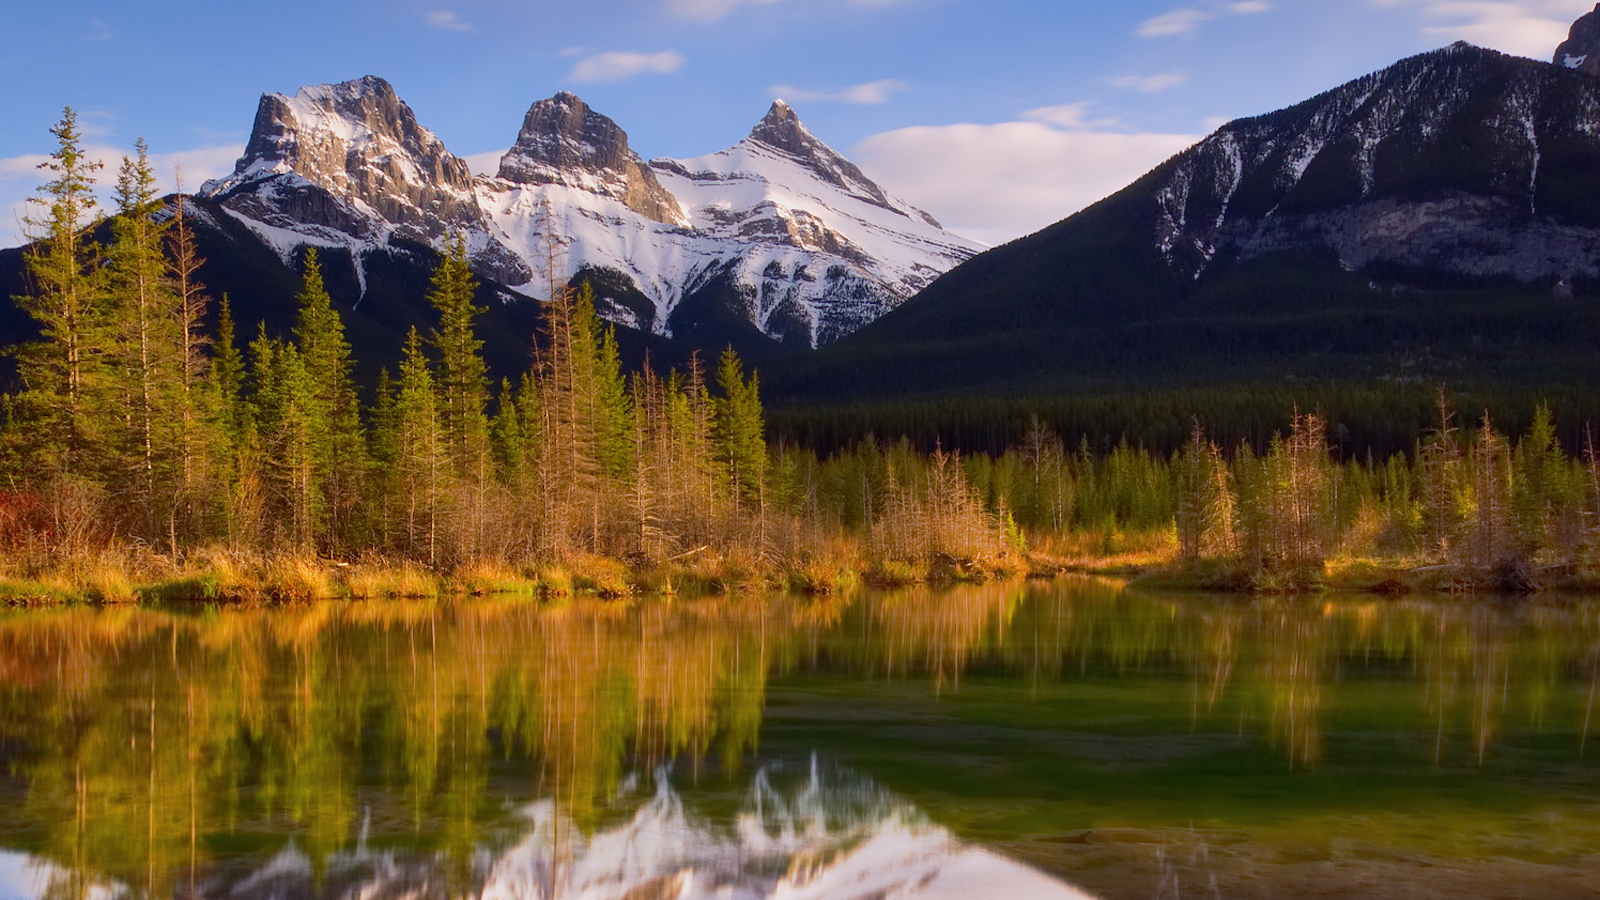 Calgary to Banff Driving Tour App with GyPSy Guide